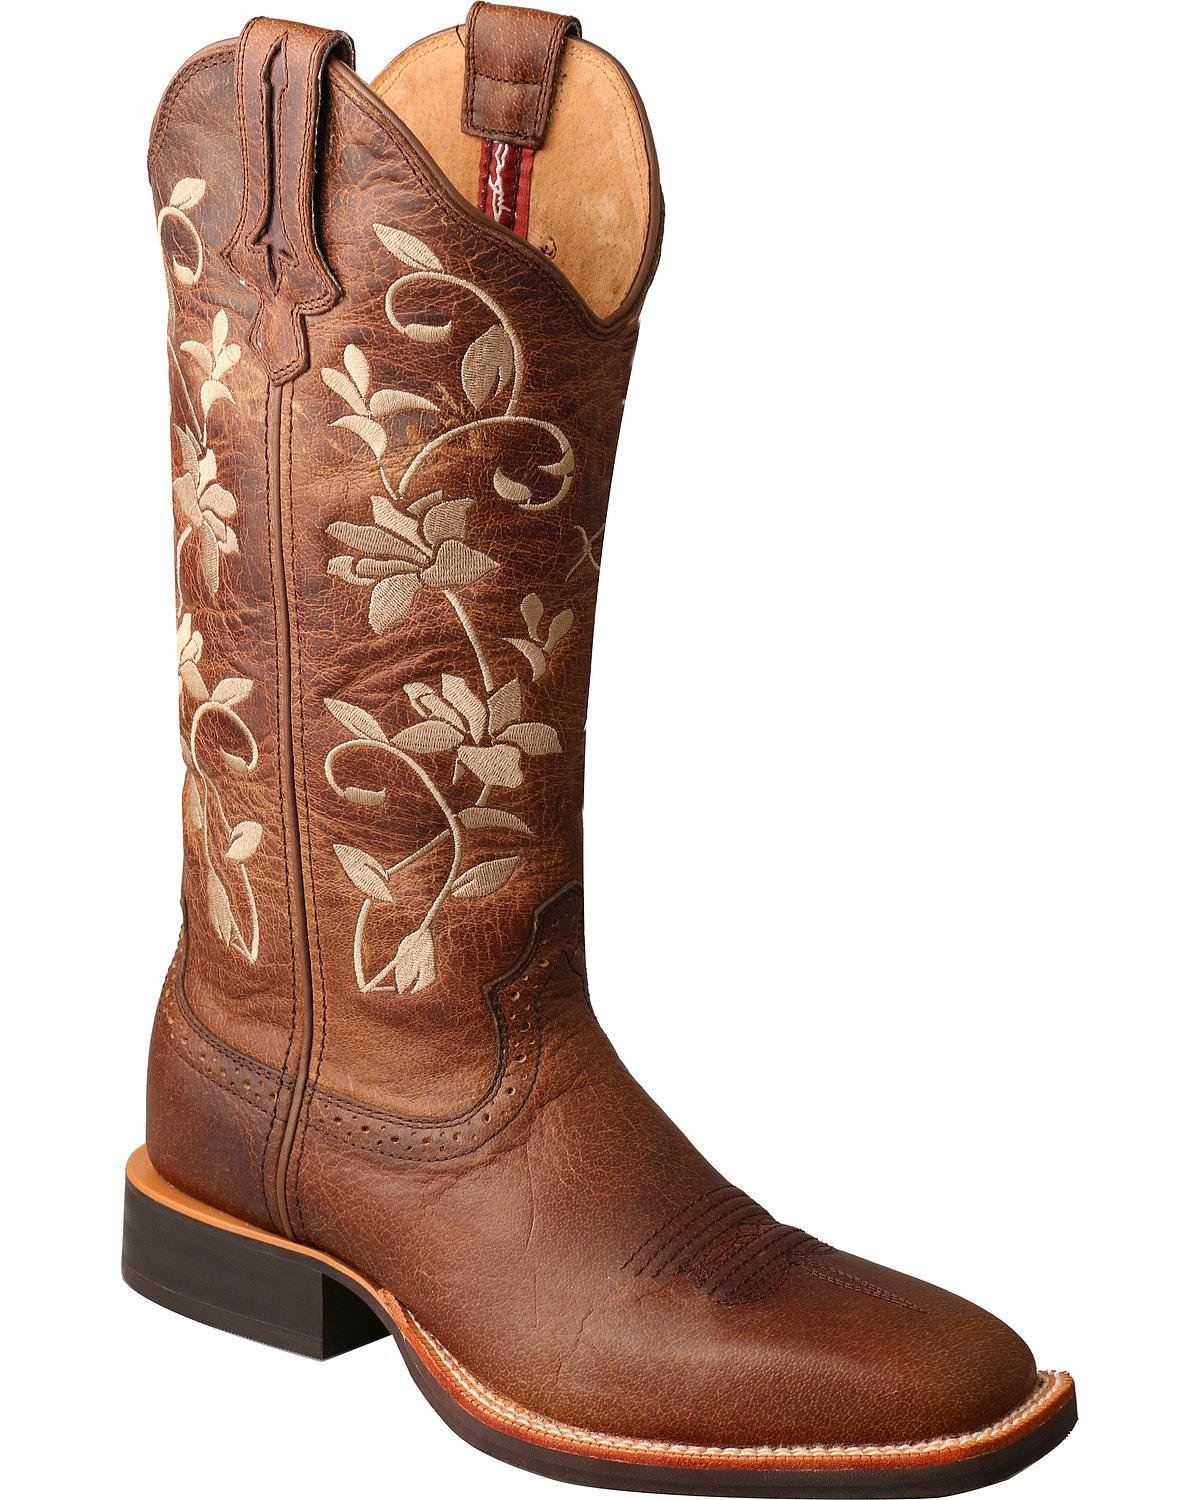 Twisted X Women's Floral Ruff Stock Cowgirl Boot Square Toe Brown 8.5 M US